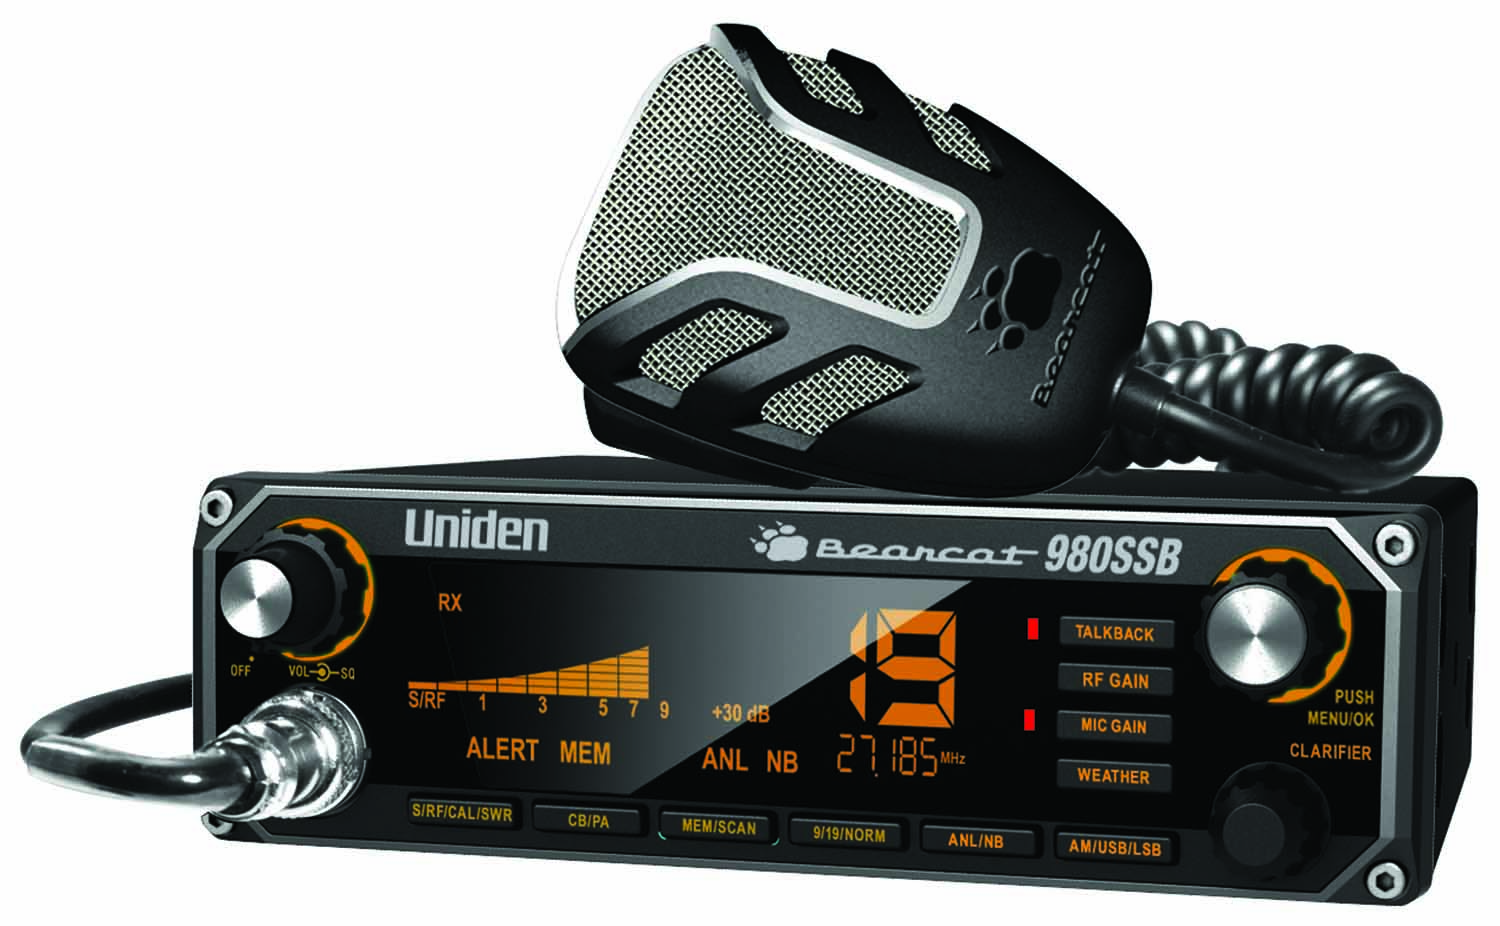 BC980SSB - Uniden CB Radio with SSB